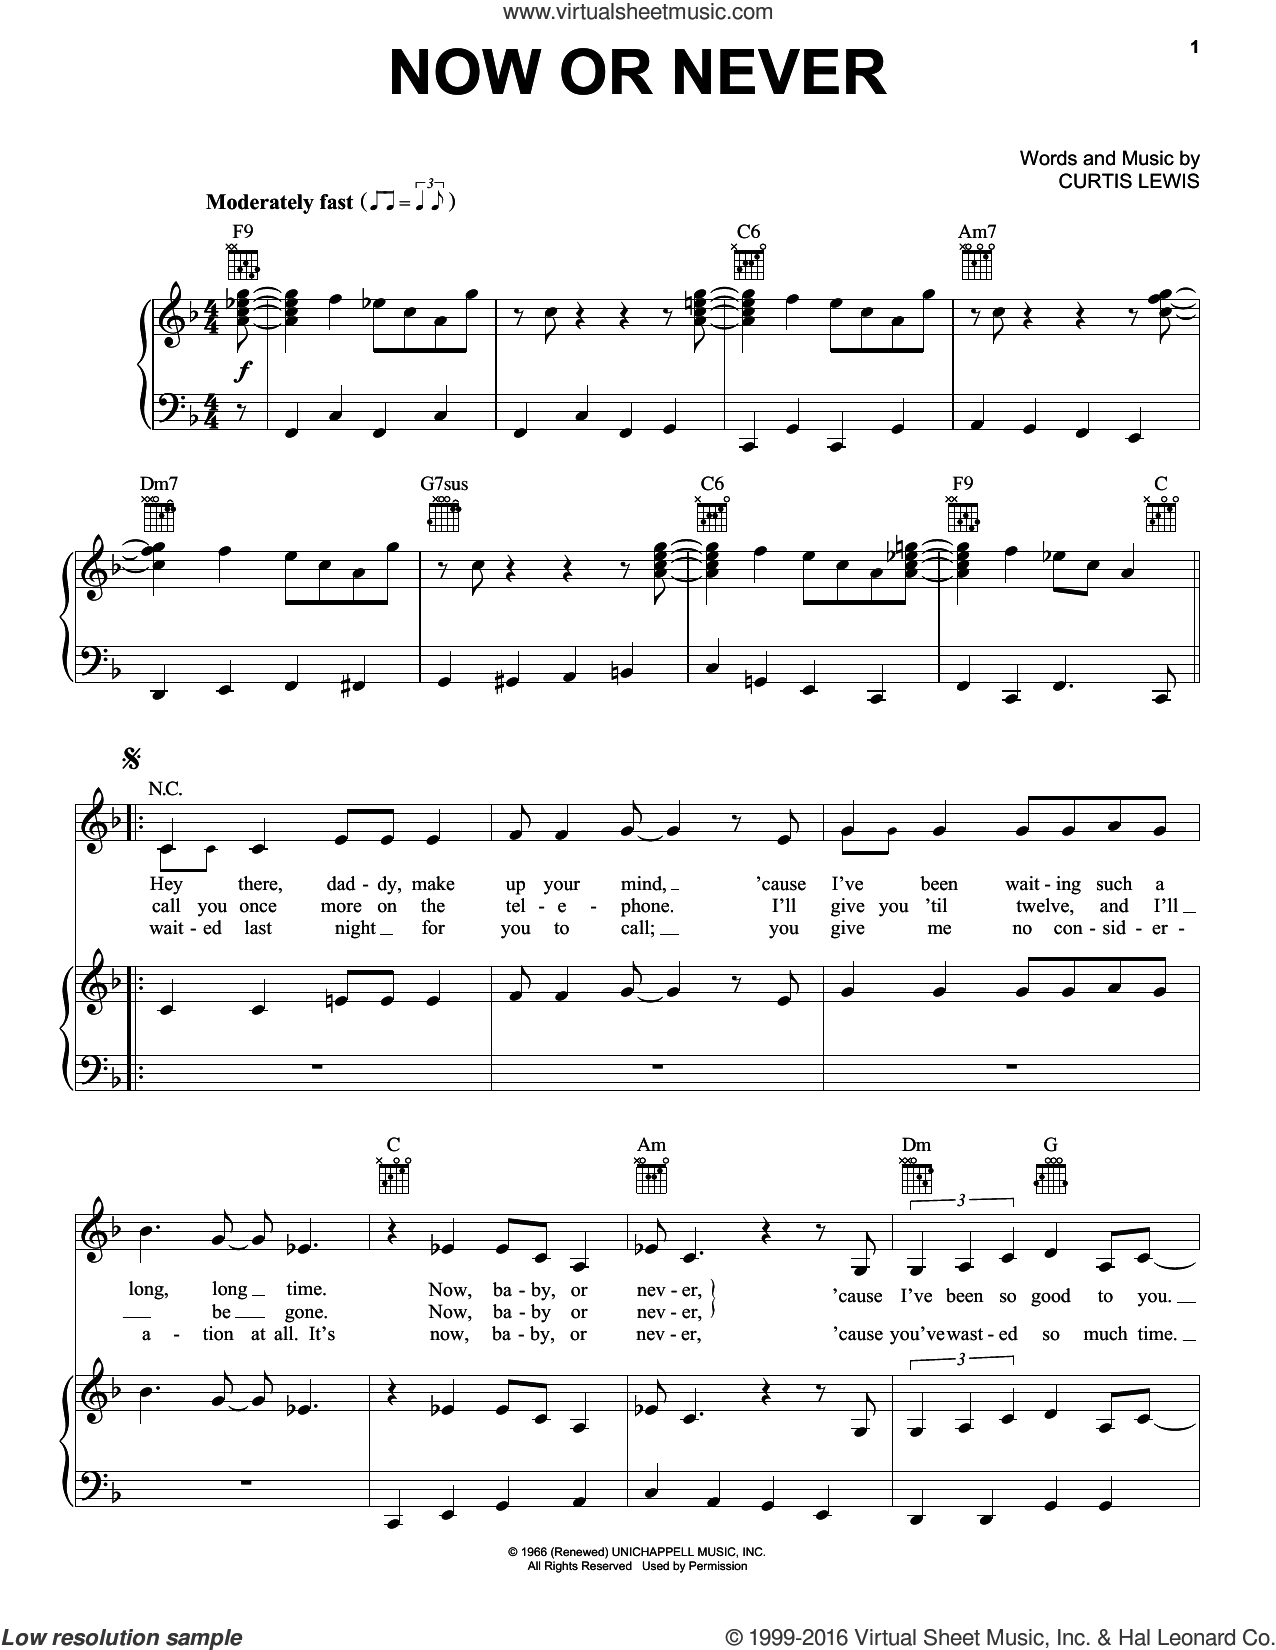 Now Or Never sheet music for voice, piano or guitar by Curtis Lewis